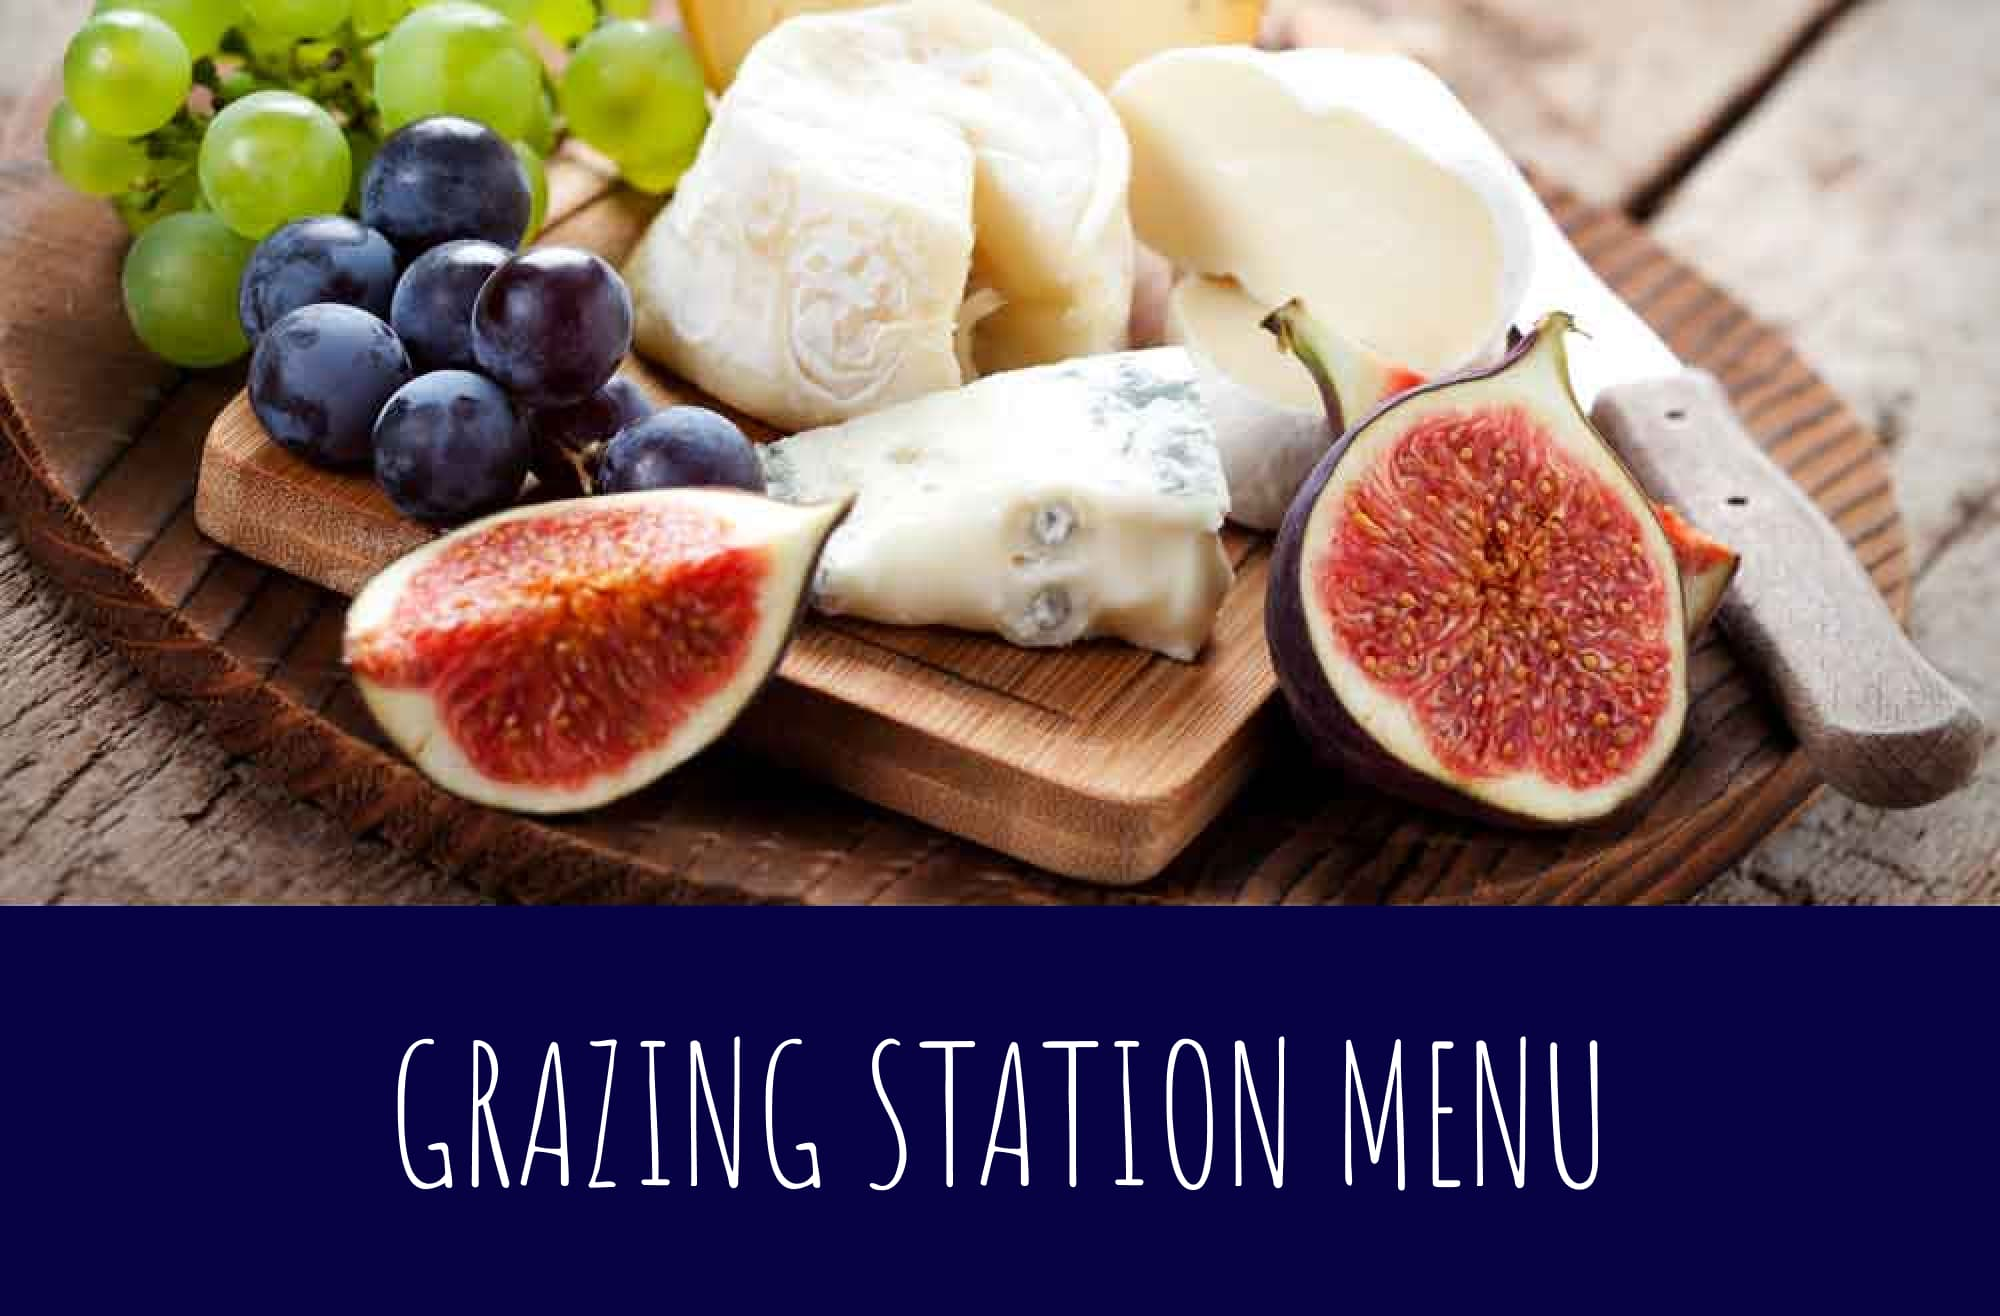 Grazing Station Menu